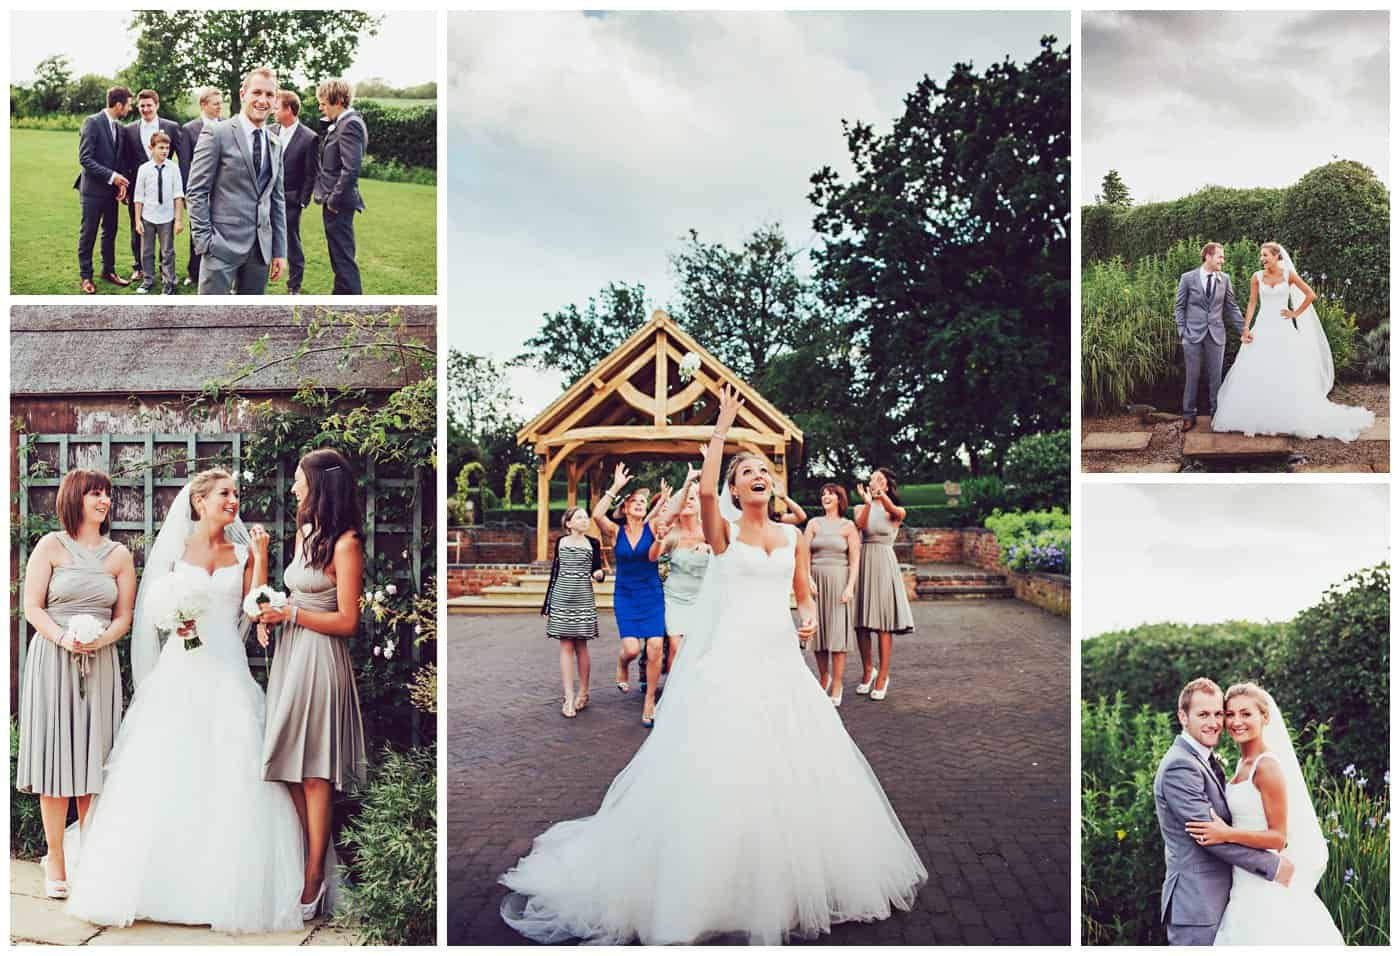 wethele-manor-wedding-photographer_1210